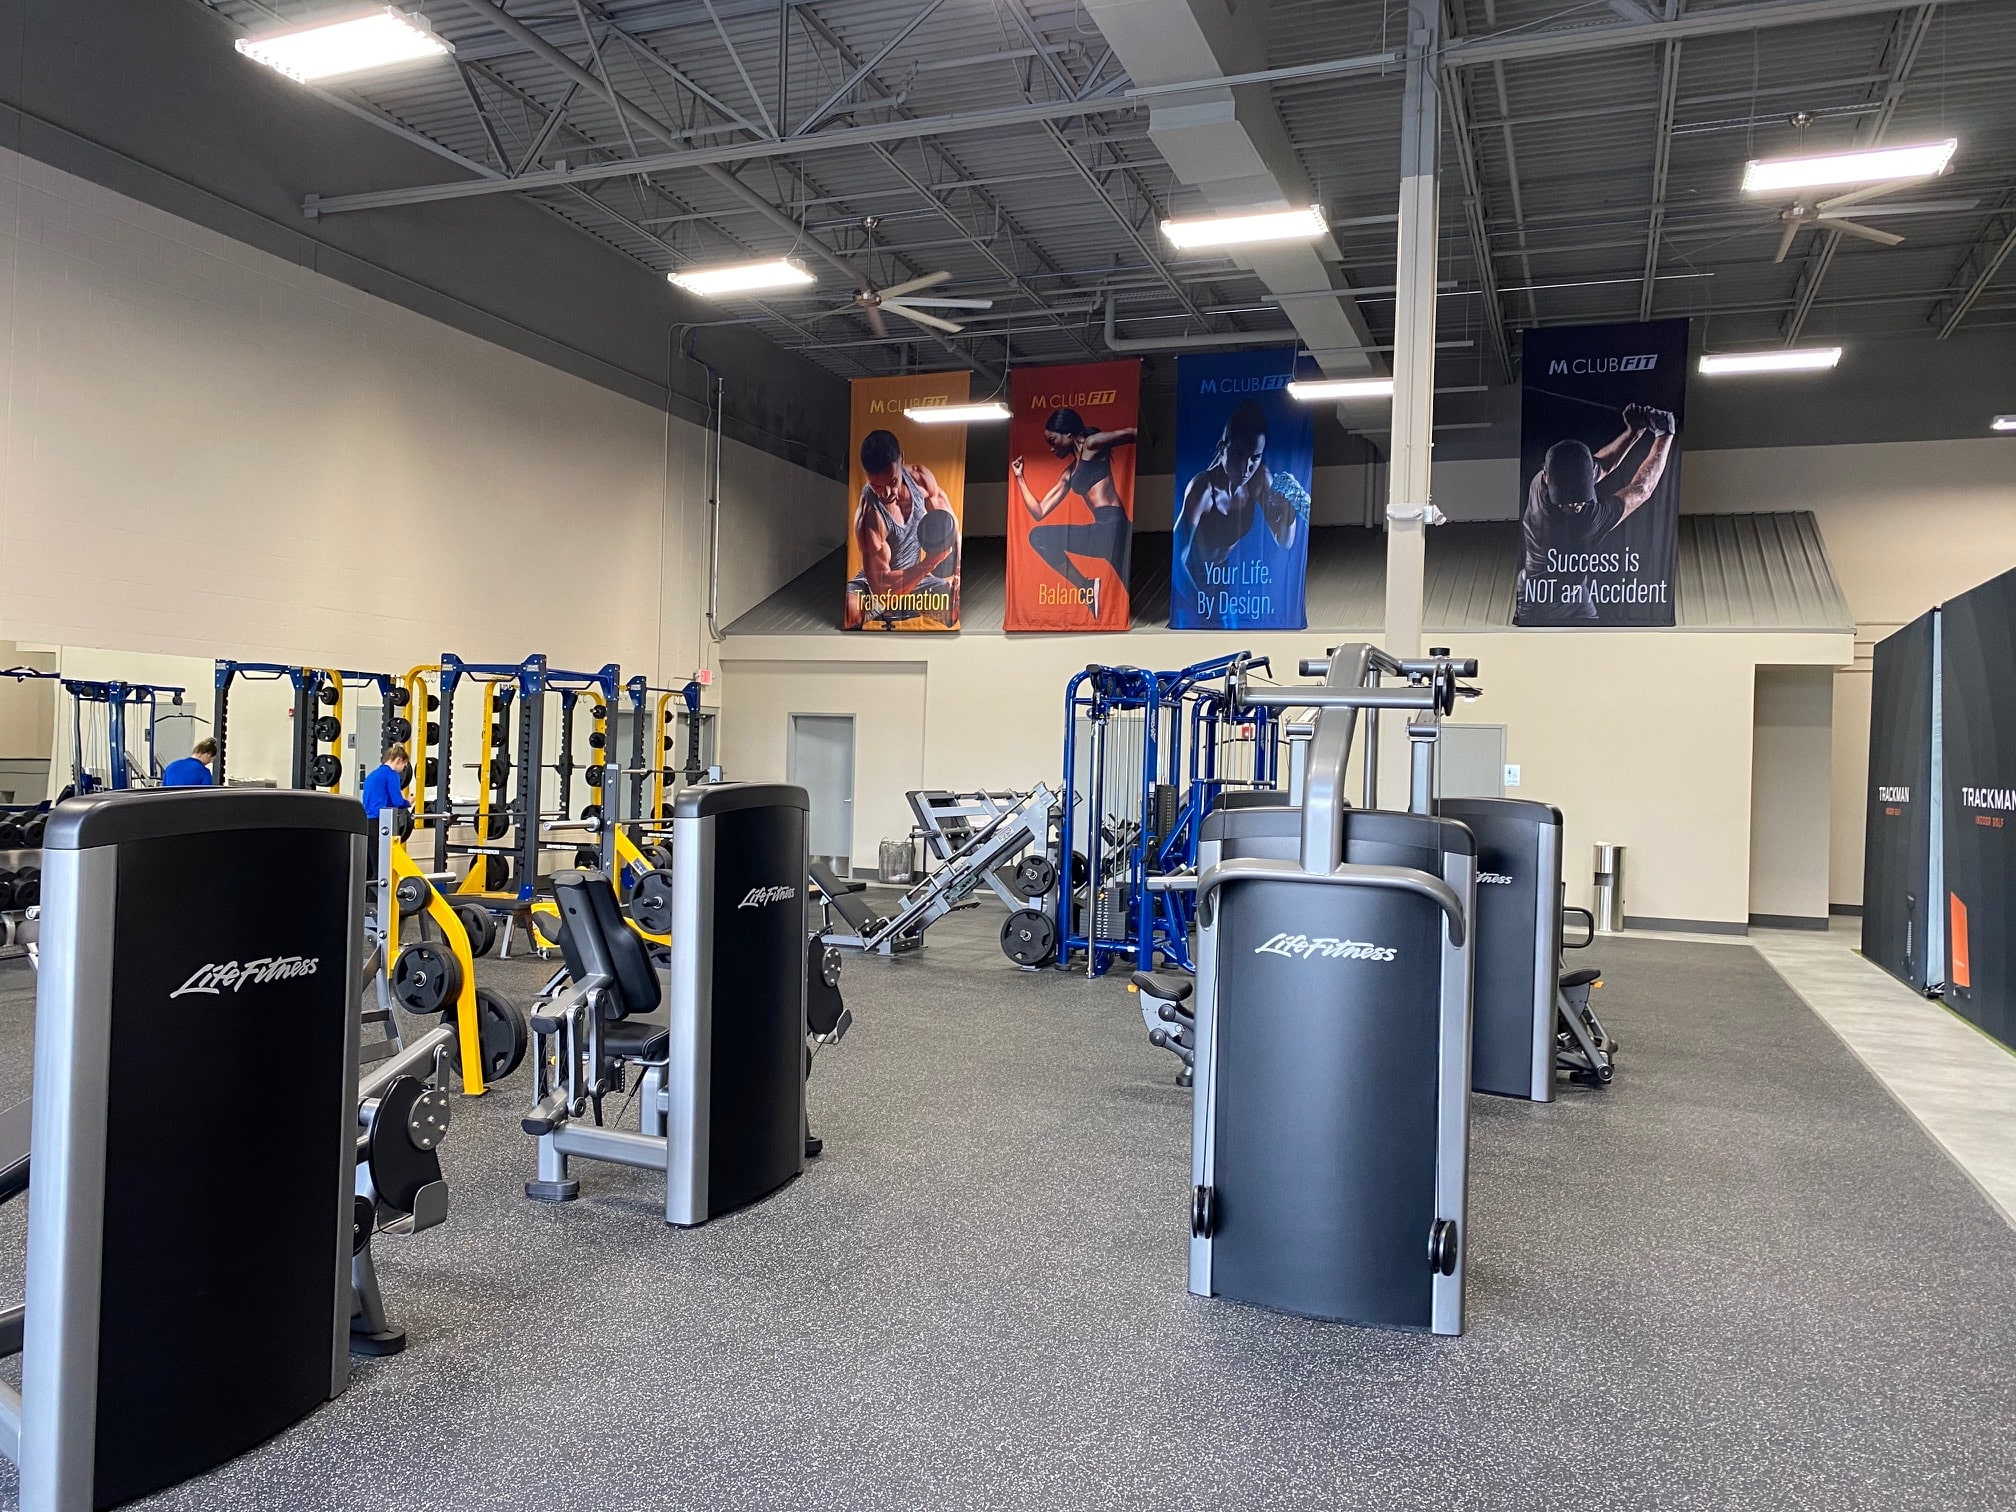 M Club Fit_Beaumont - Hargett_11